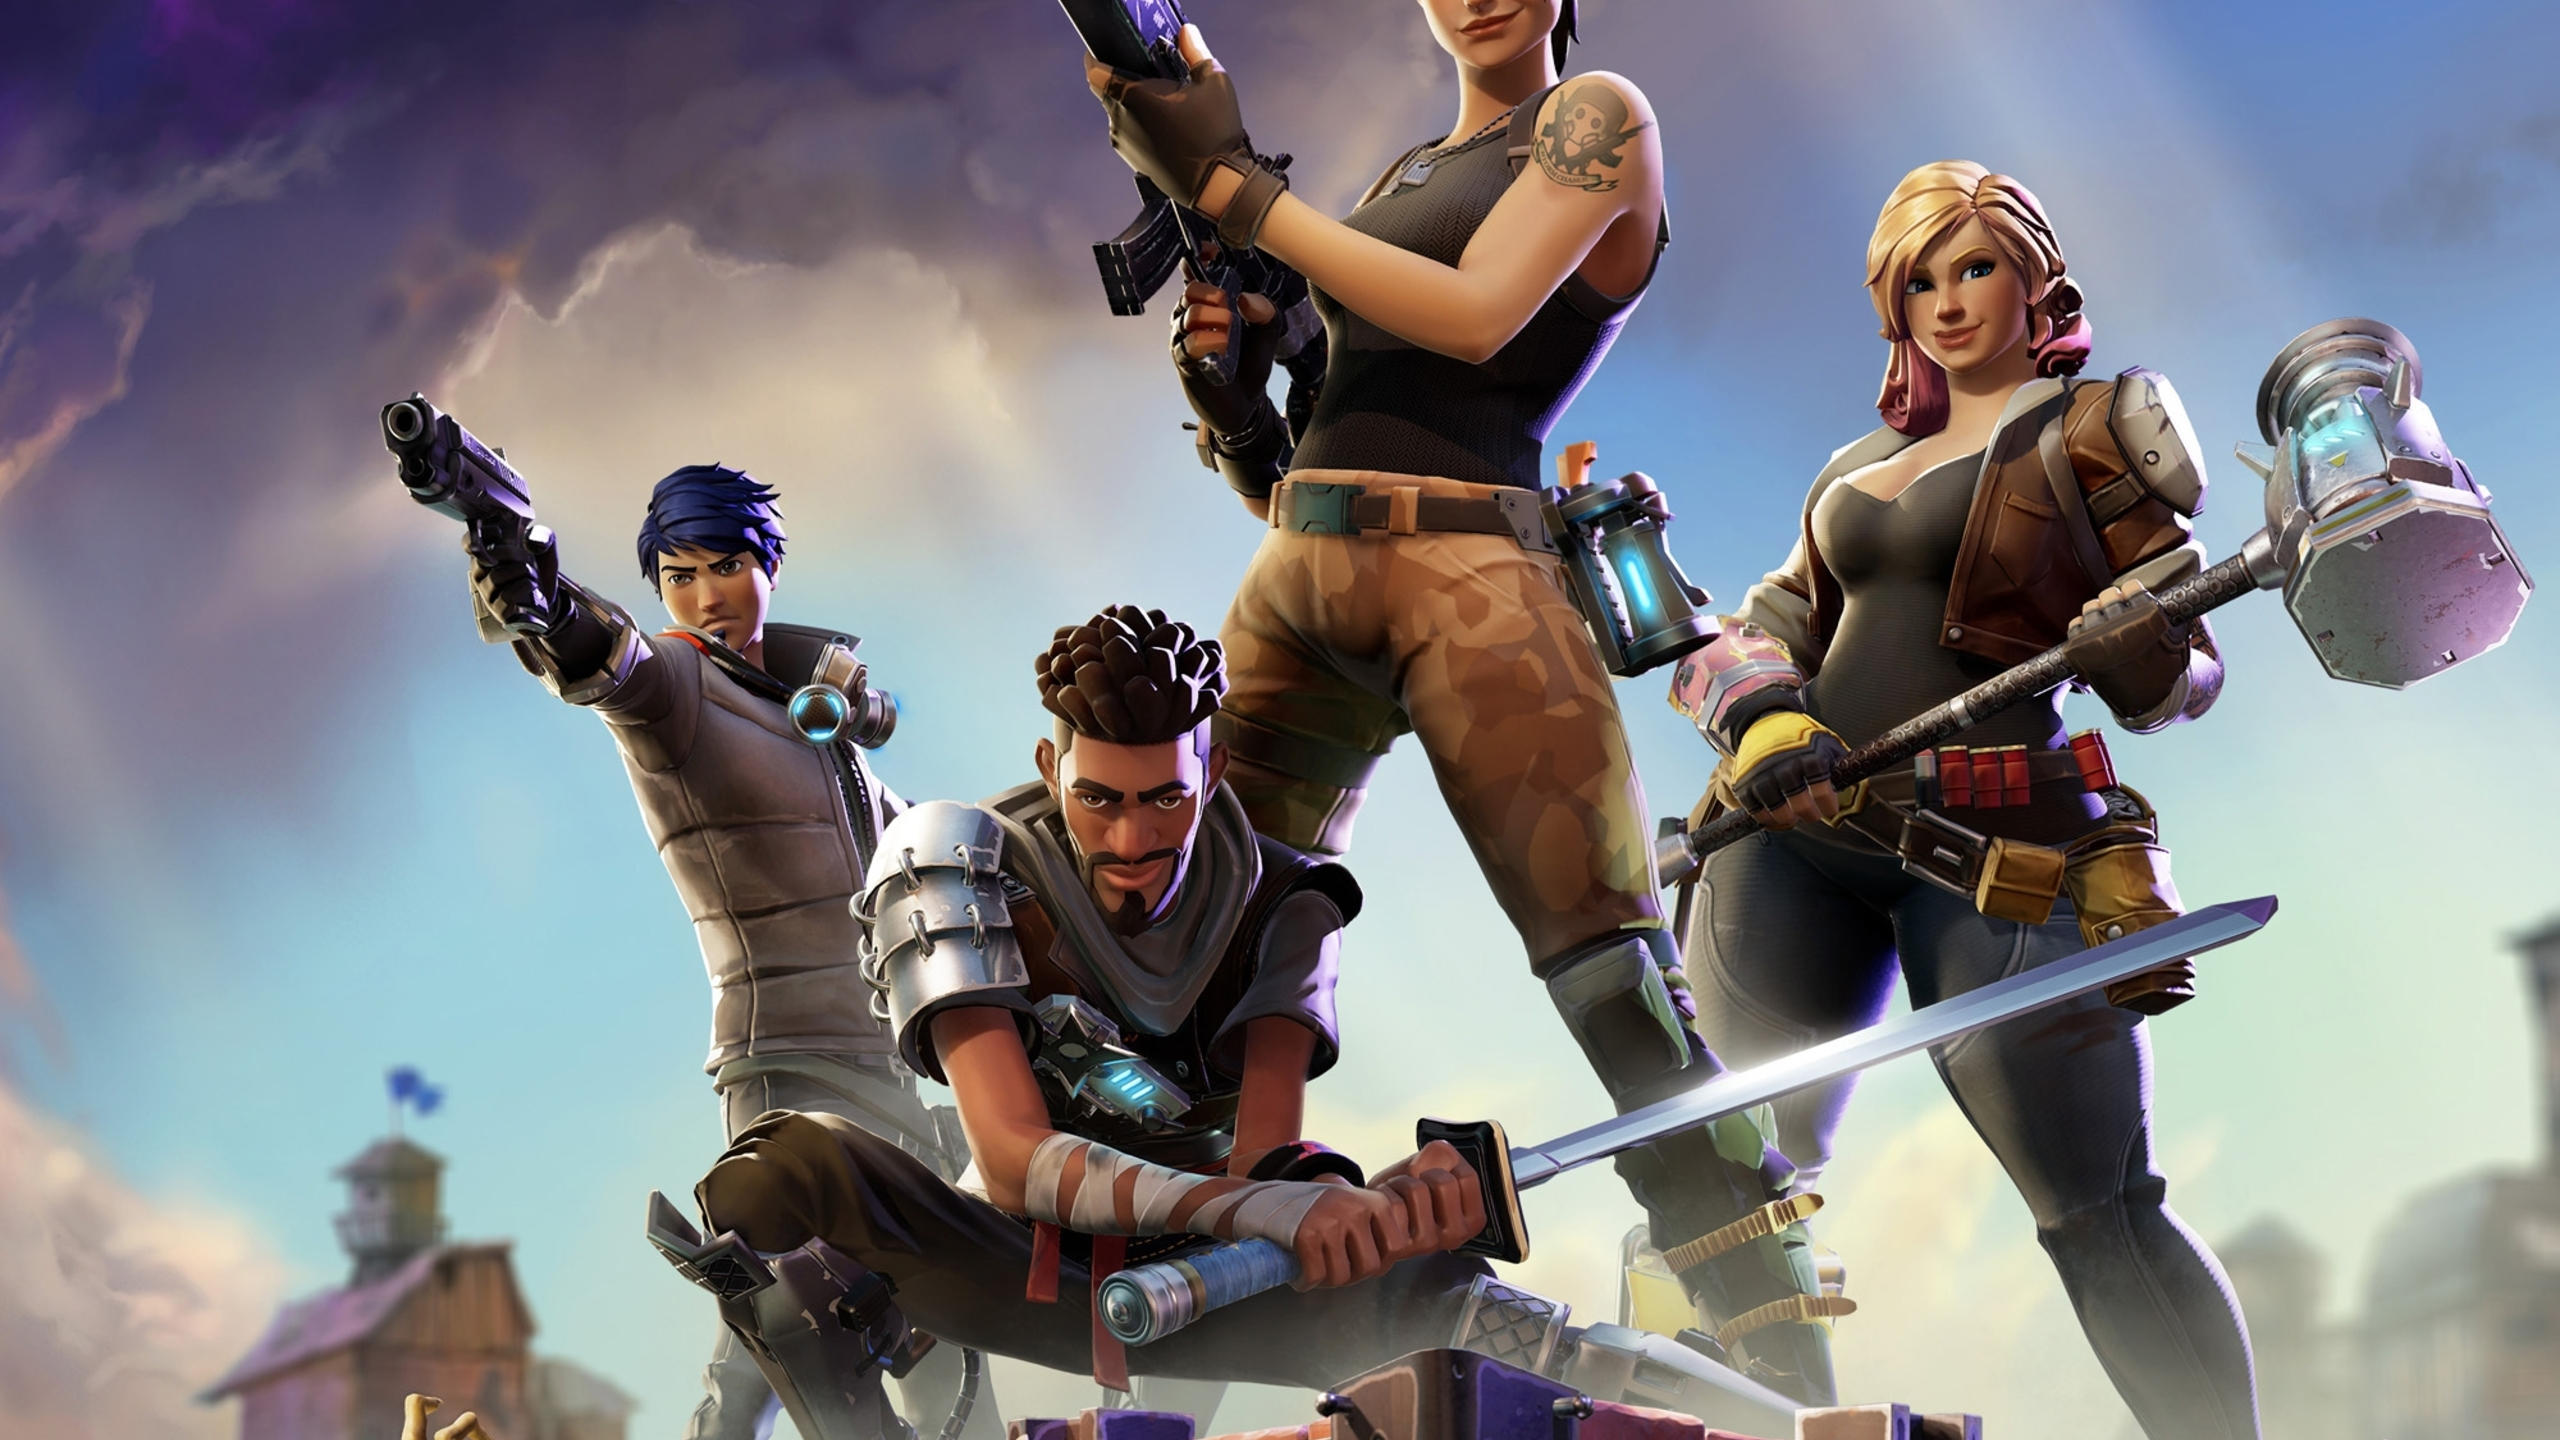 2560x1440 Fortnite 1440p Resolution Hd 4k Wallpapers Images